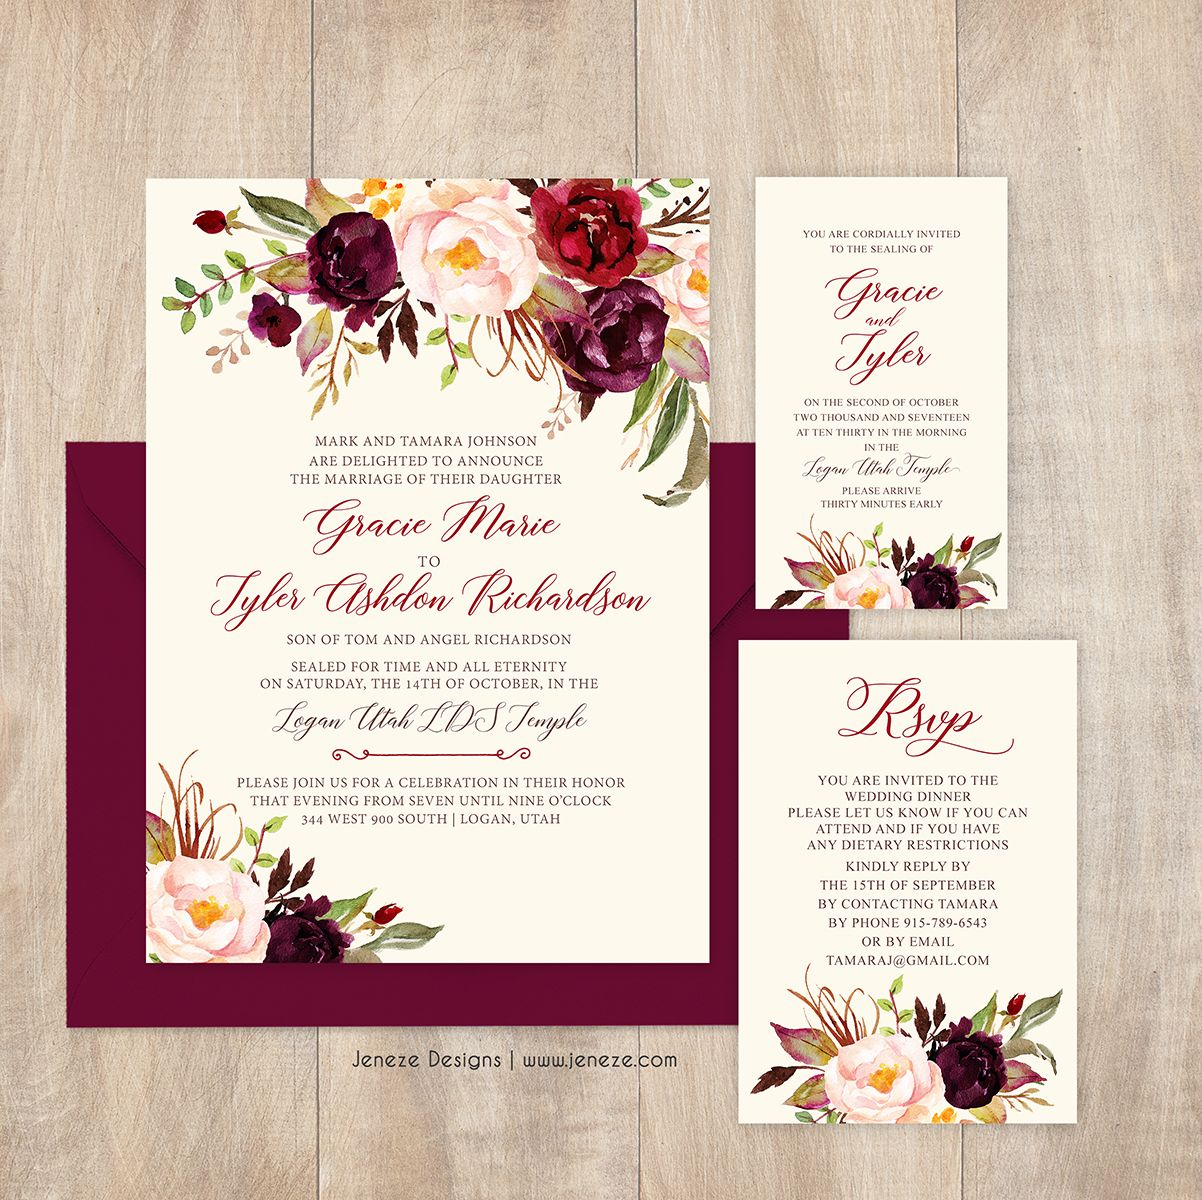 Small Ceremony Big Reception Invitations: Burgundy Floral Wedding Invitations. Pretty Flowers In Red